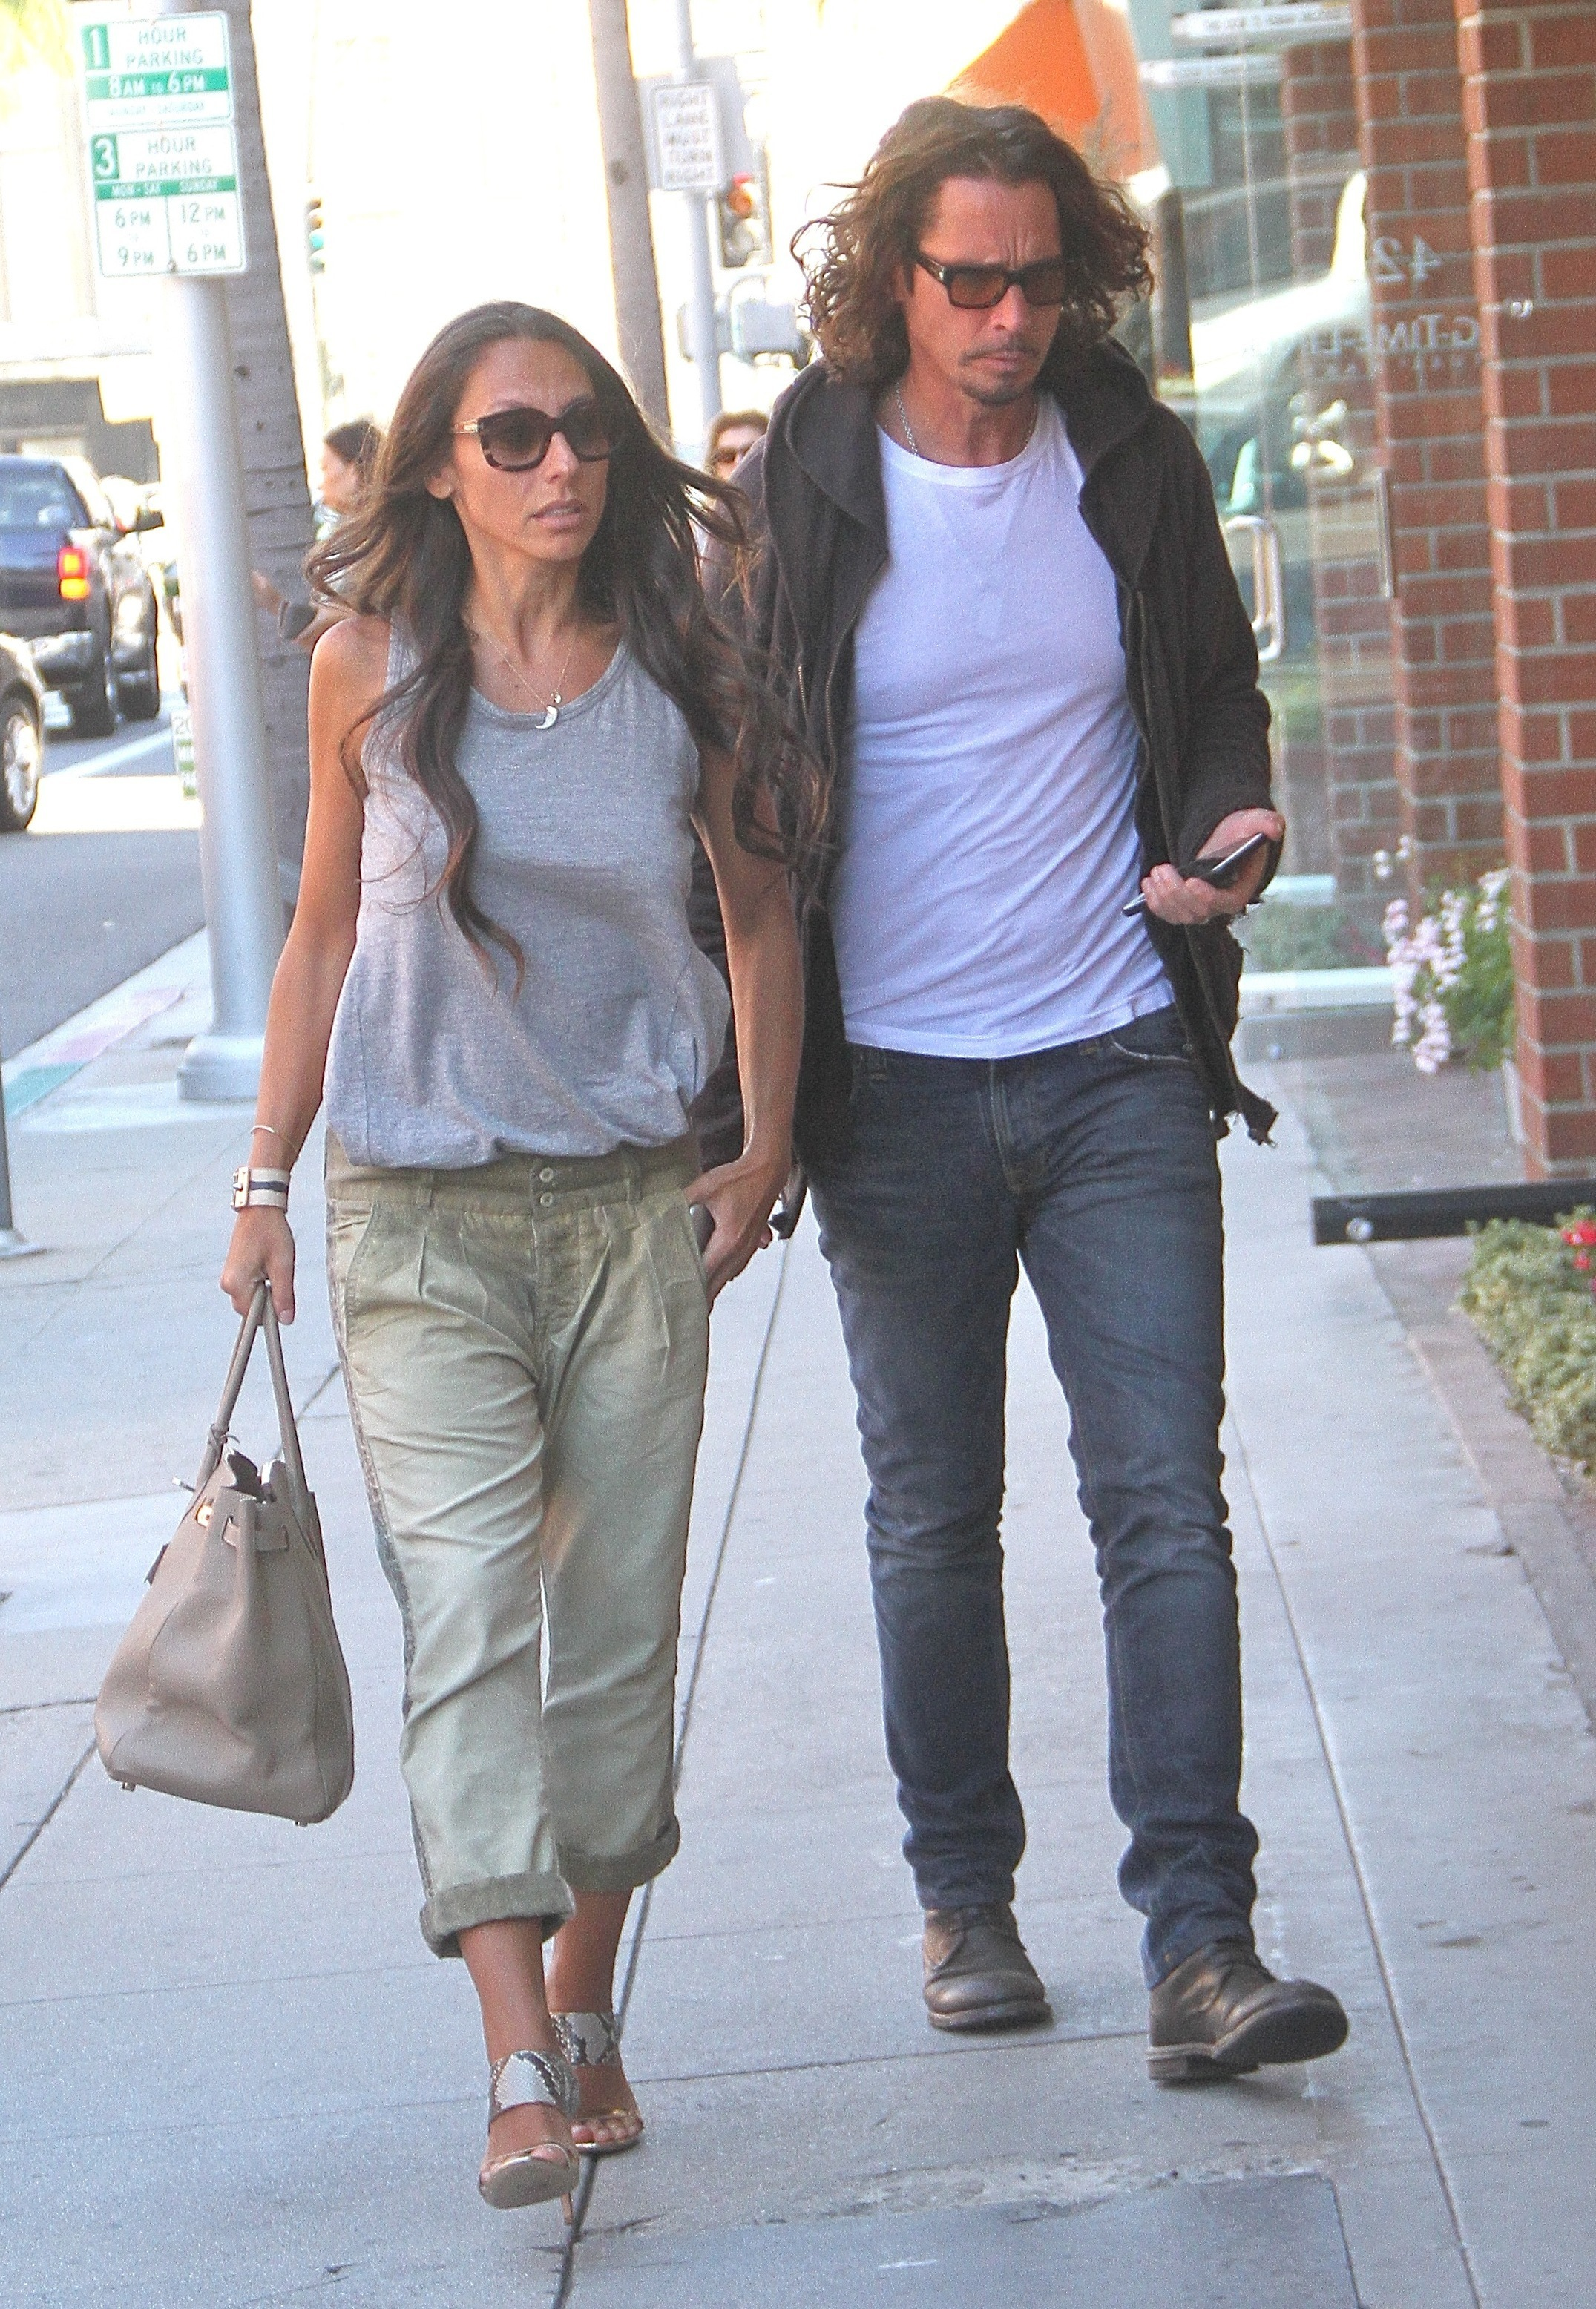 Musician Chris Cornell and his wife Vicky Karayiannis go shopping in Beverly Hills                                    Featuring: Chris Cornell, Vicky Karayiannis                  Where: Hollywood, California, United States                  When: 17 Jul 2015                  Credit: WENN.com